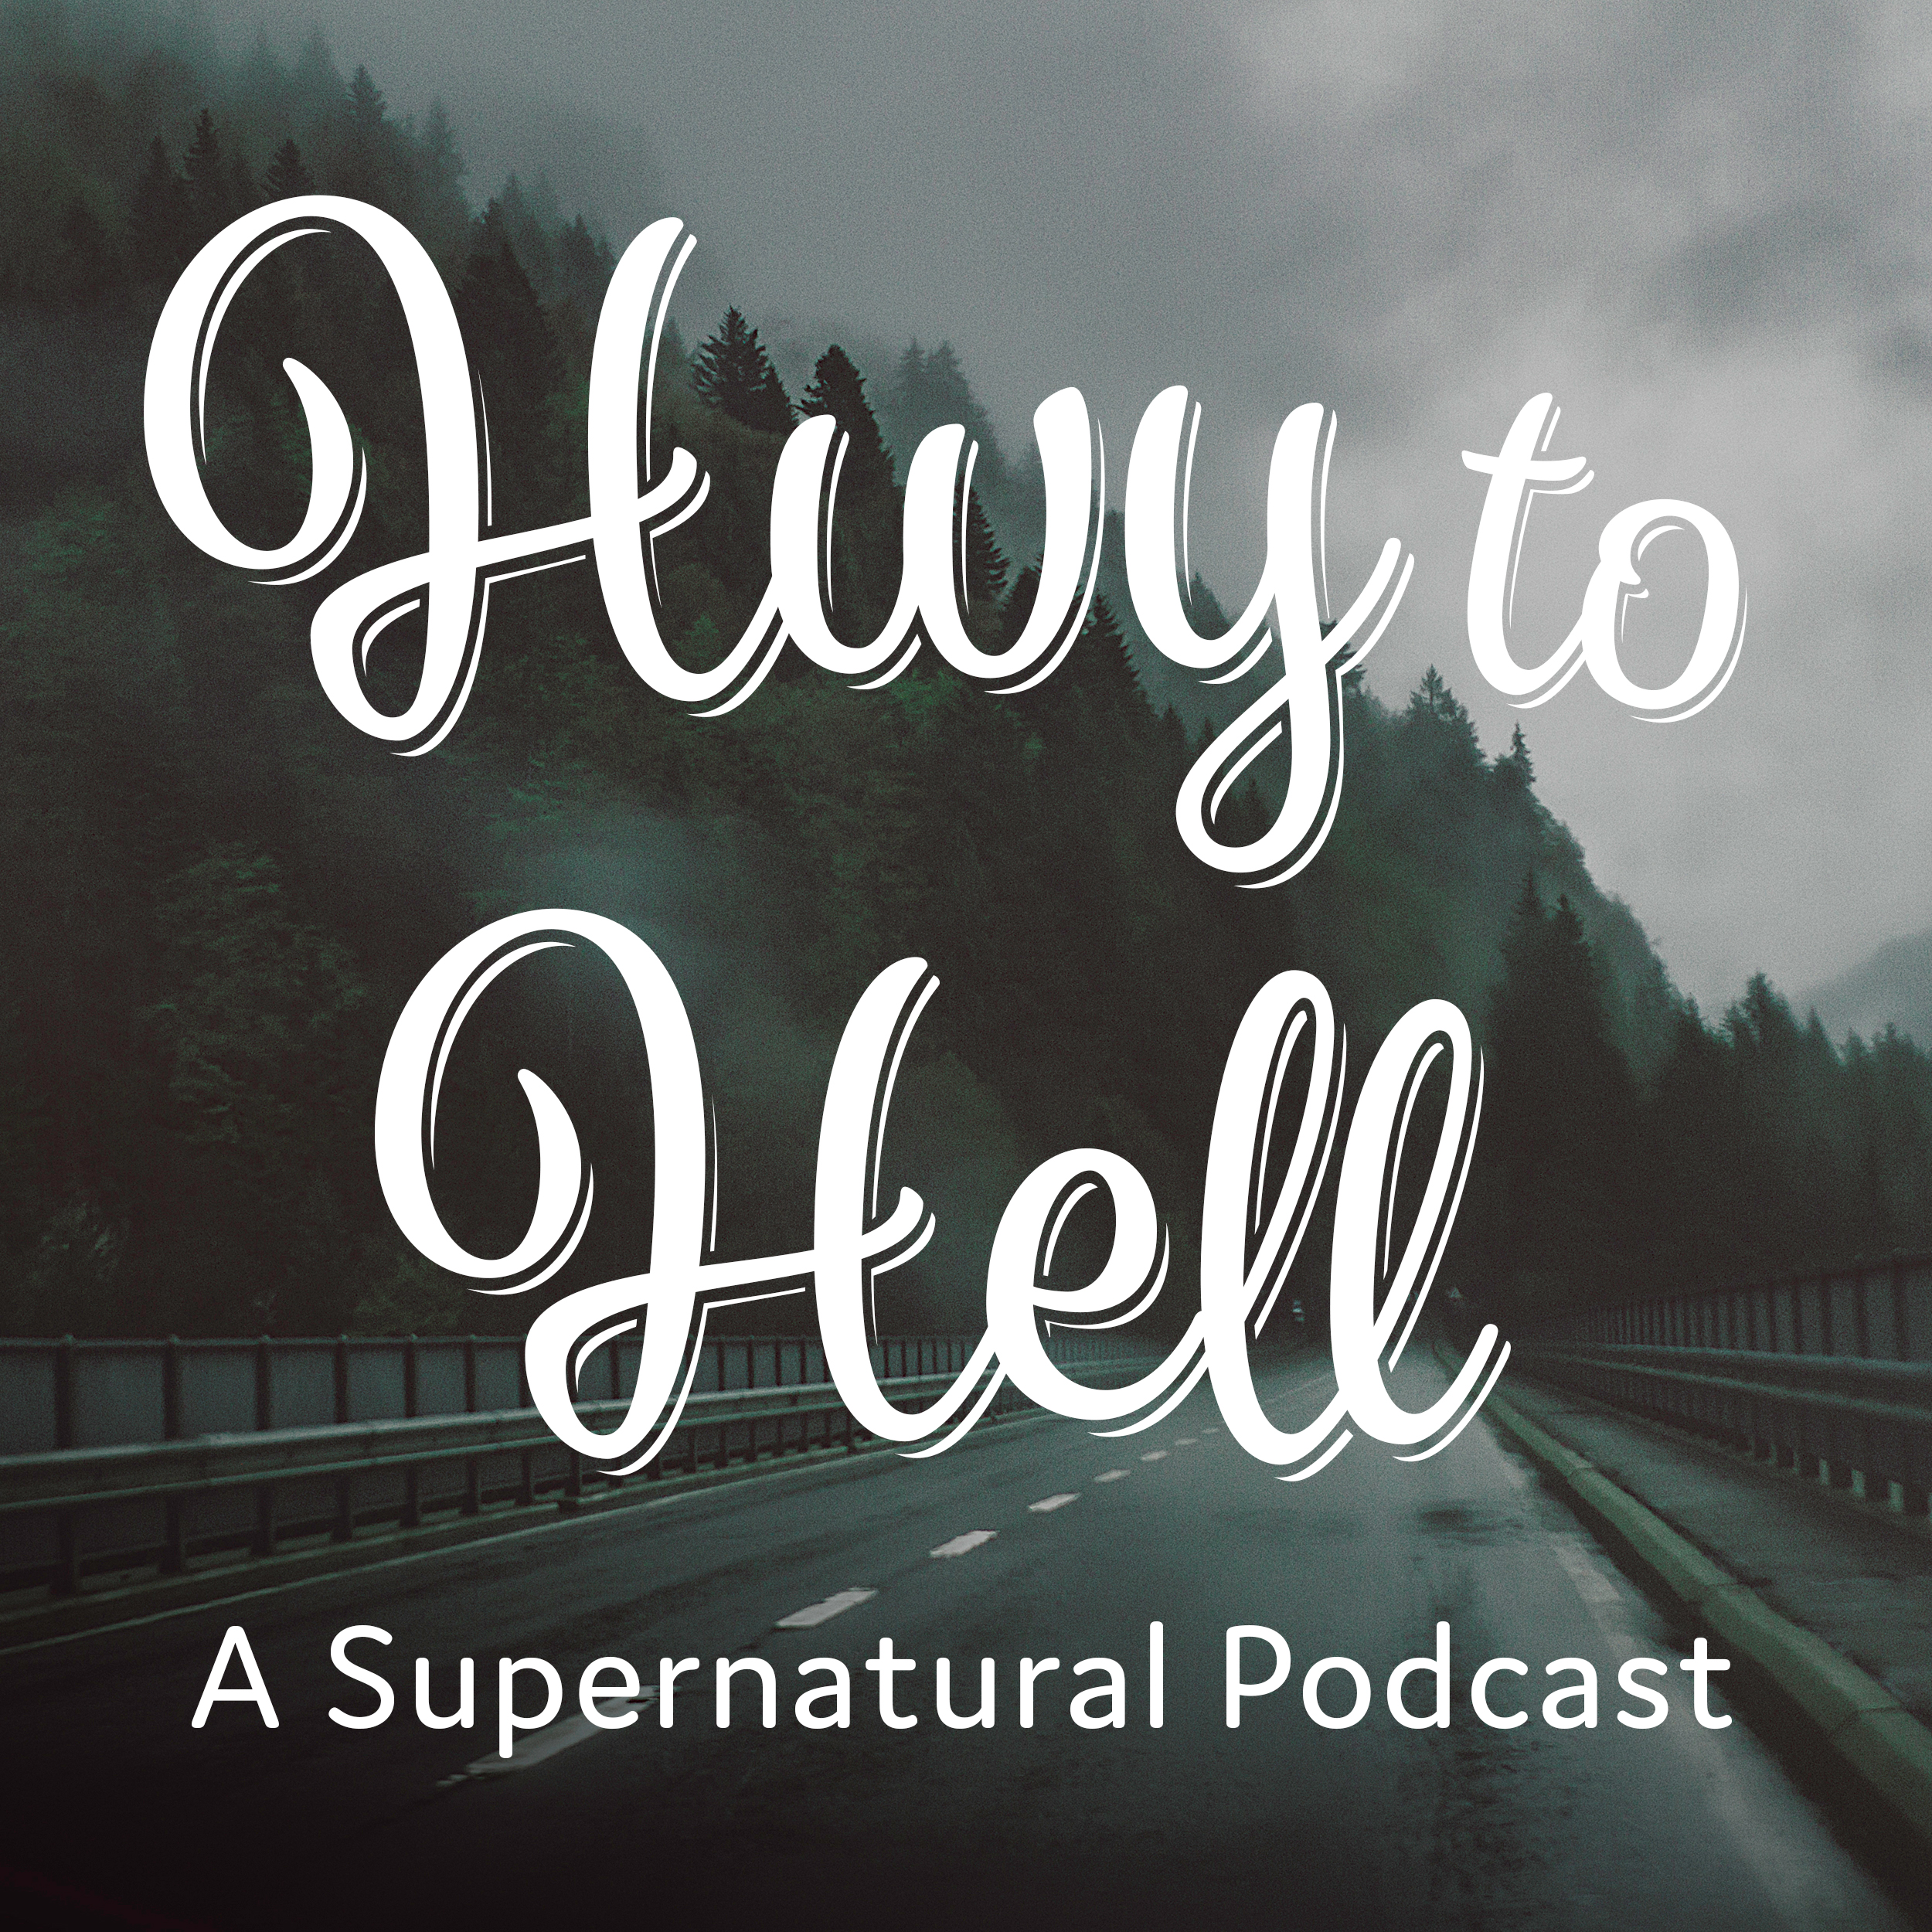 Hwy to Hell: A Supernatural Podcast show art